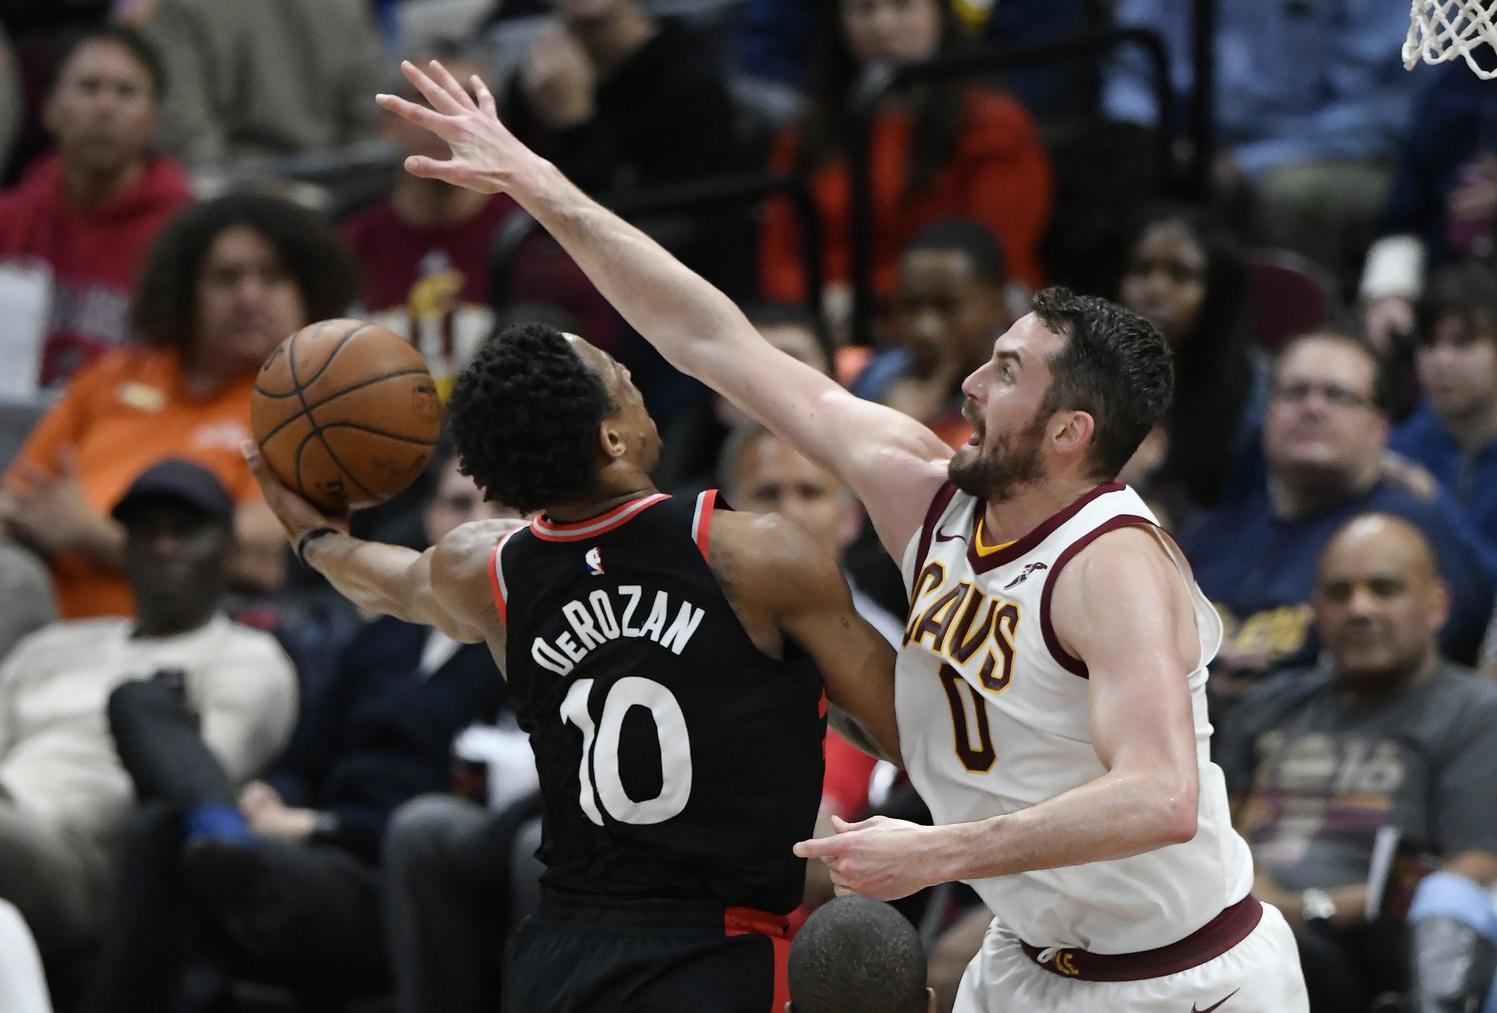 Toronto Raptors needs Kevin Love for the Playoffs